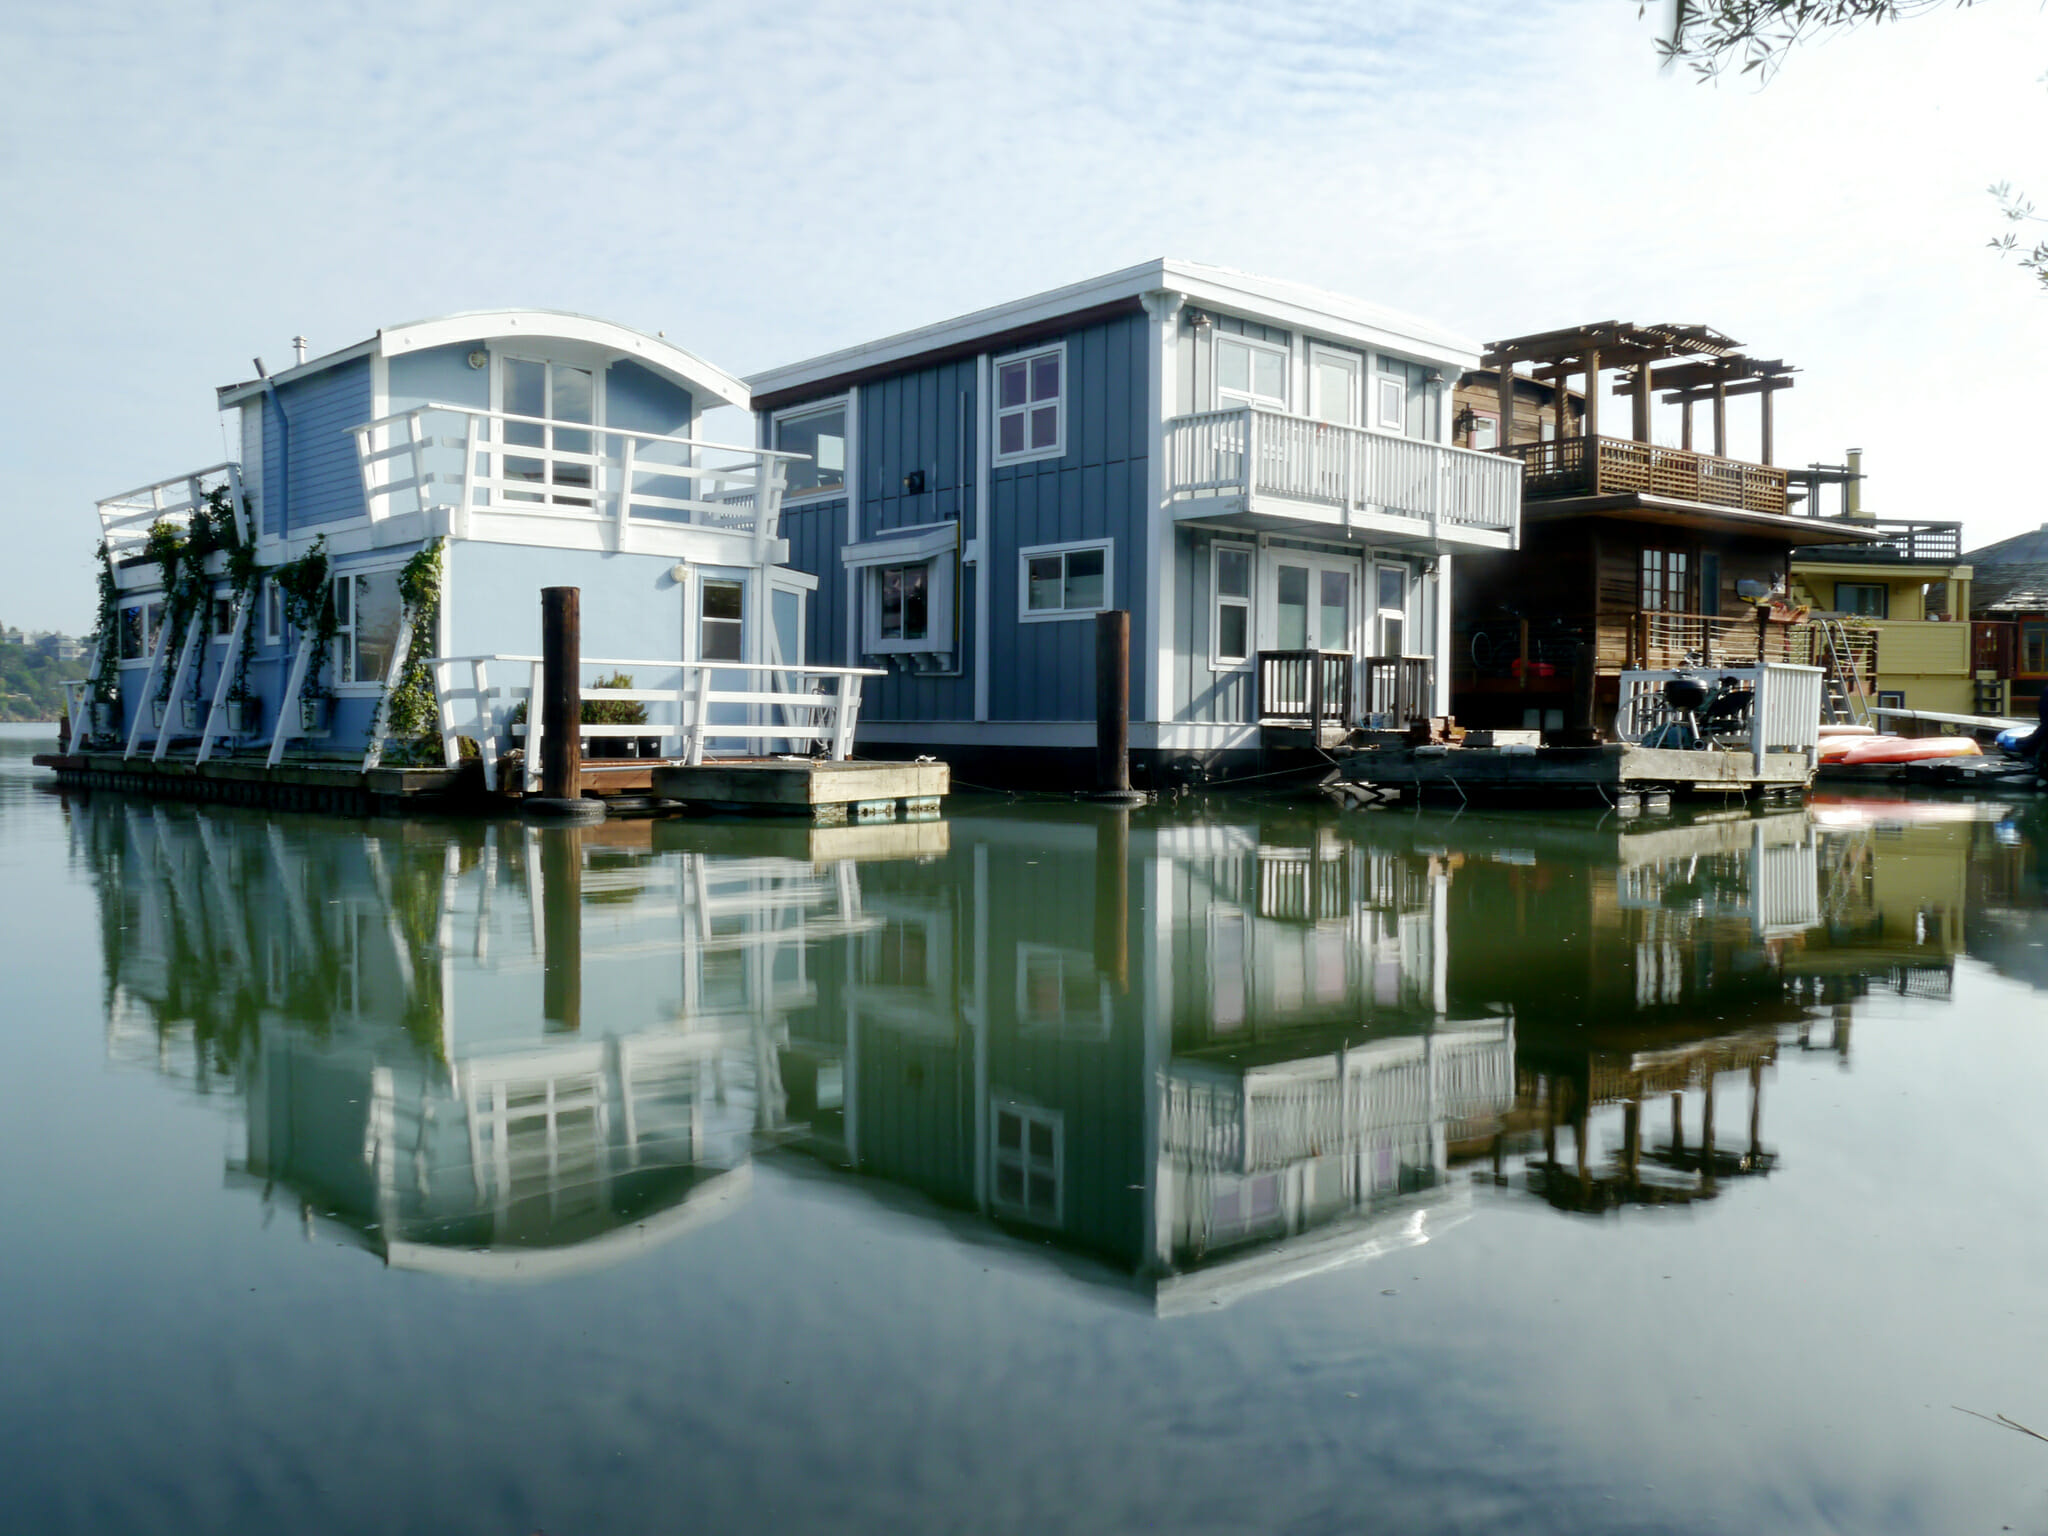 Our 5 Favorite SF Walking Tours: sausalito houseboat tour in SF